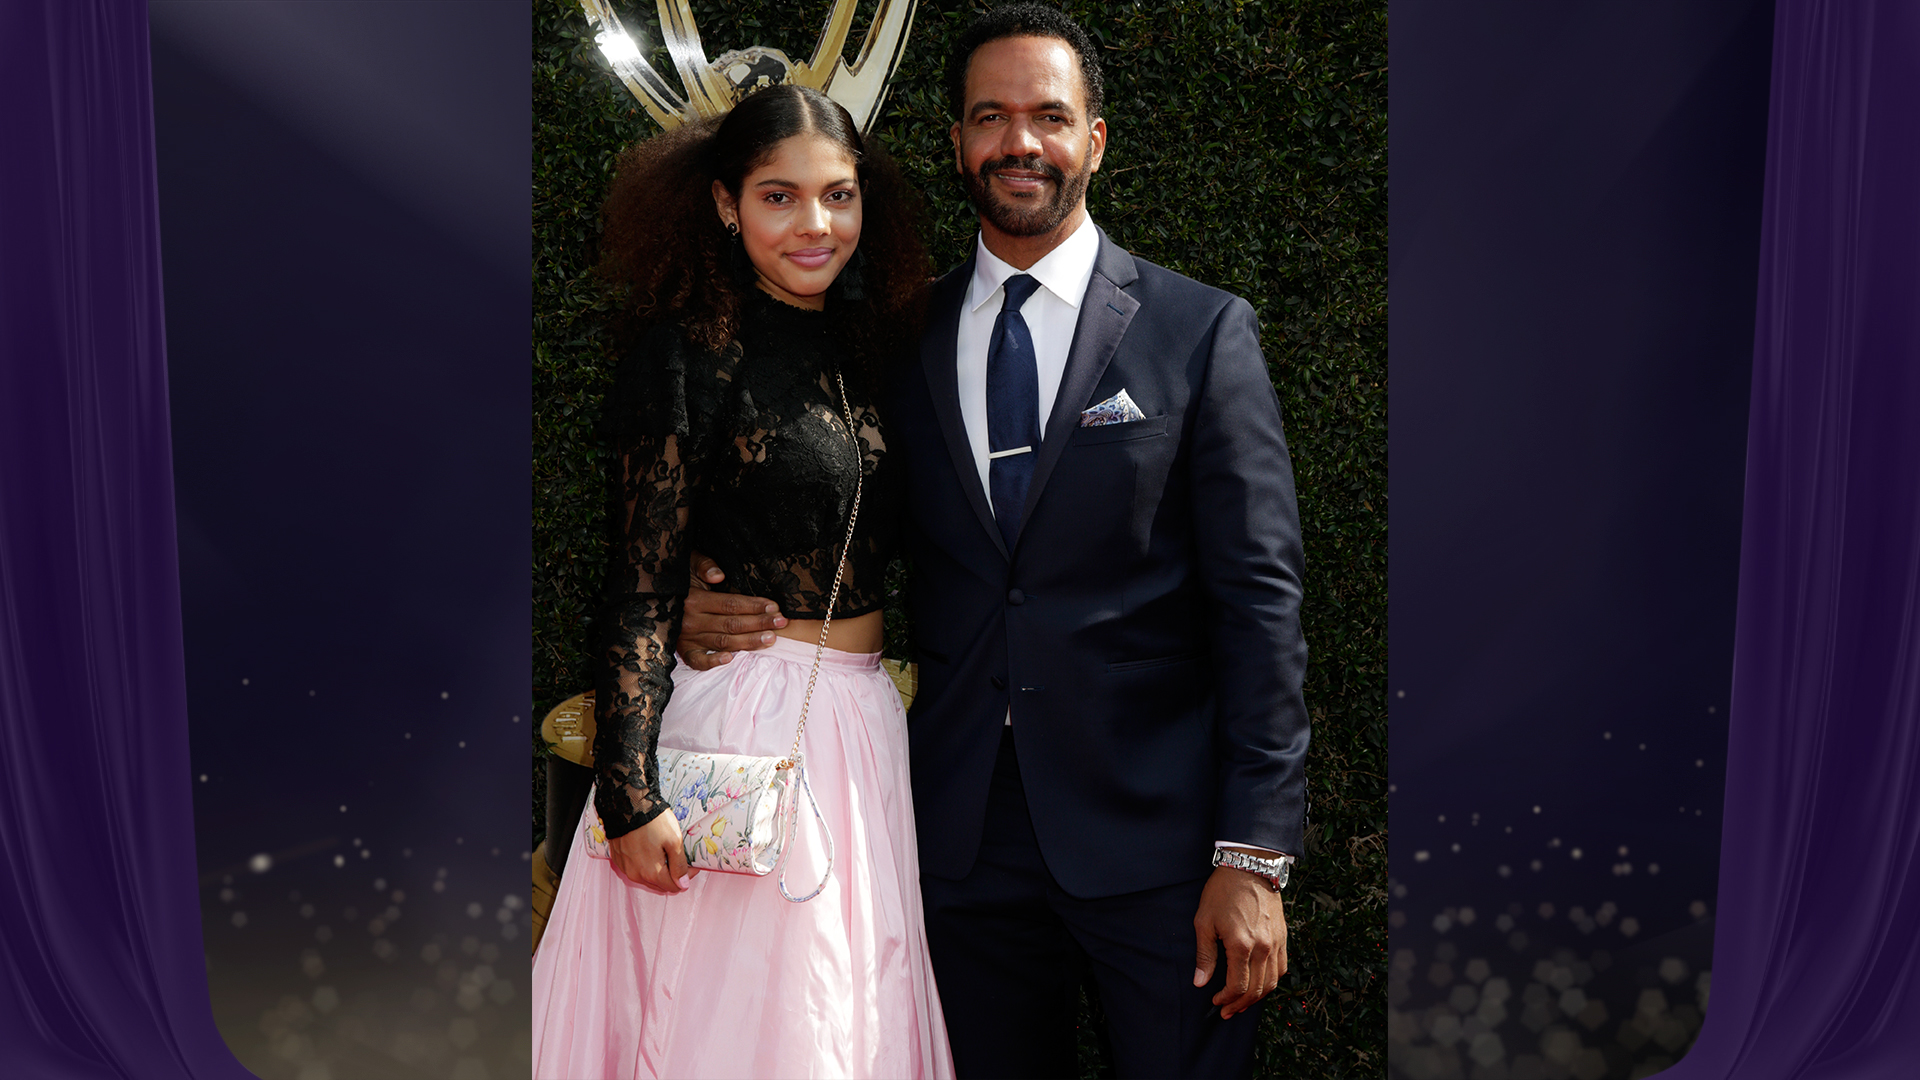 The Young and the Restless star Kristoff St. John stops for a photo with his daughter on the red carpet before heading inside to present.